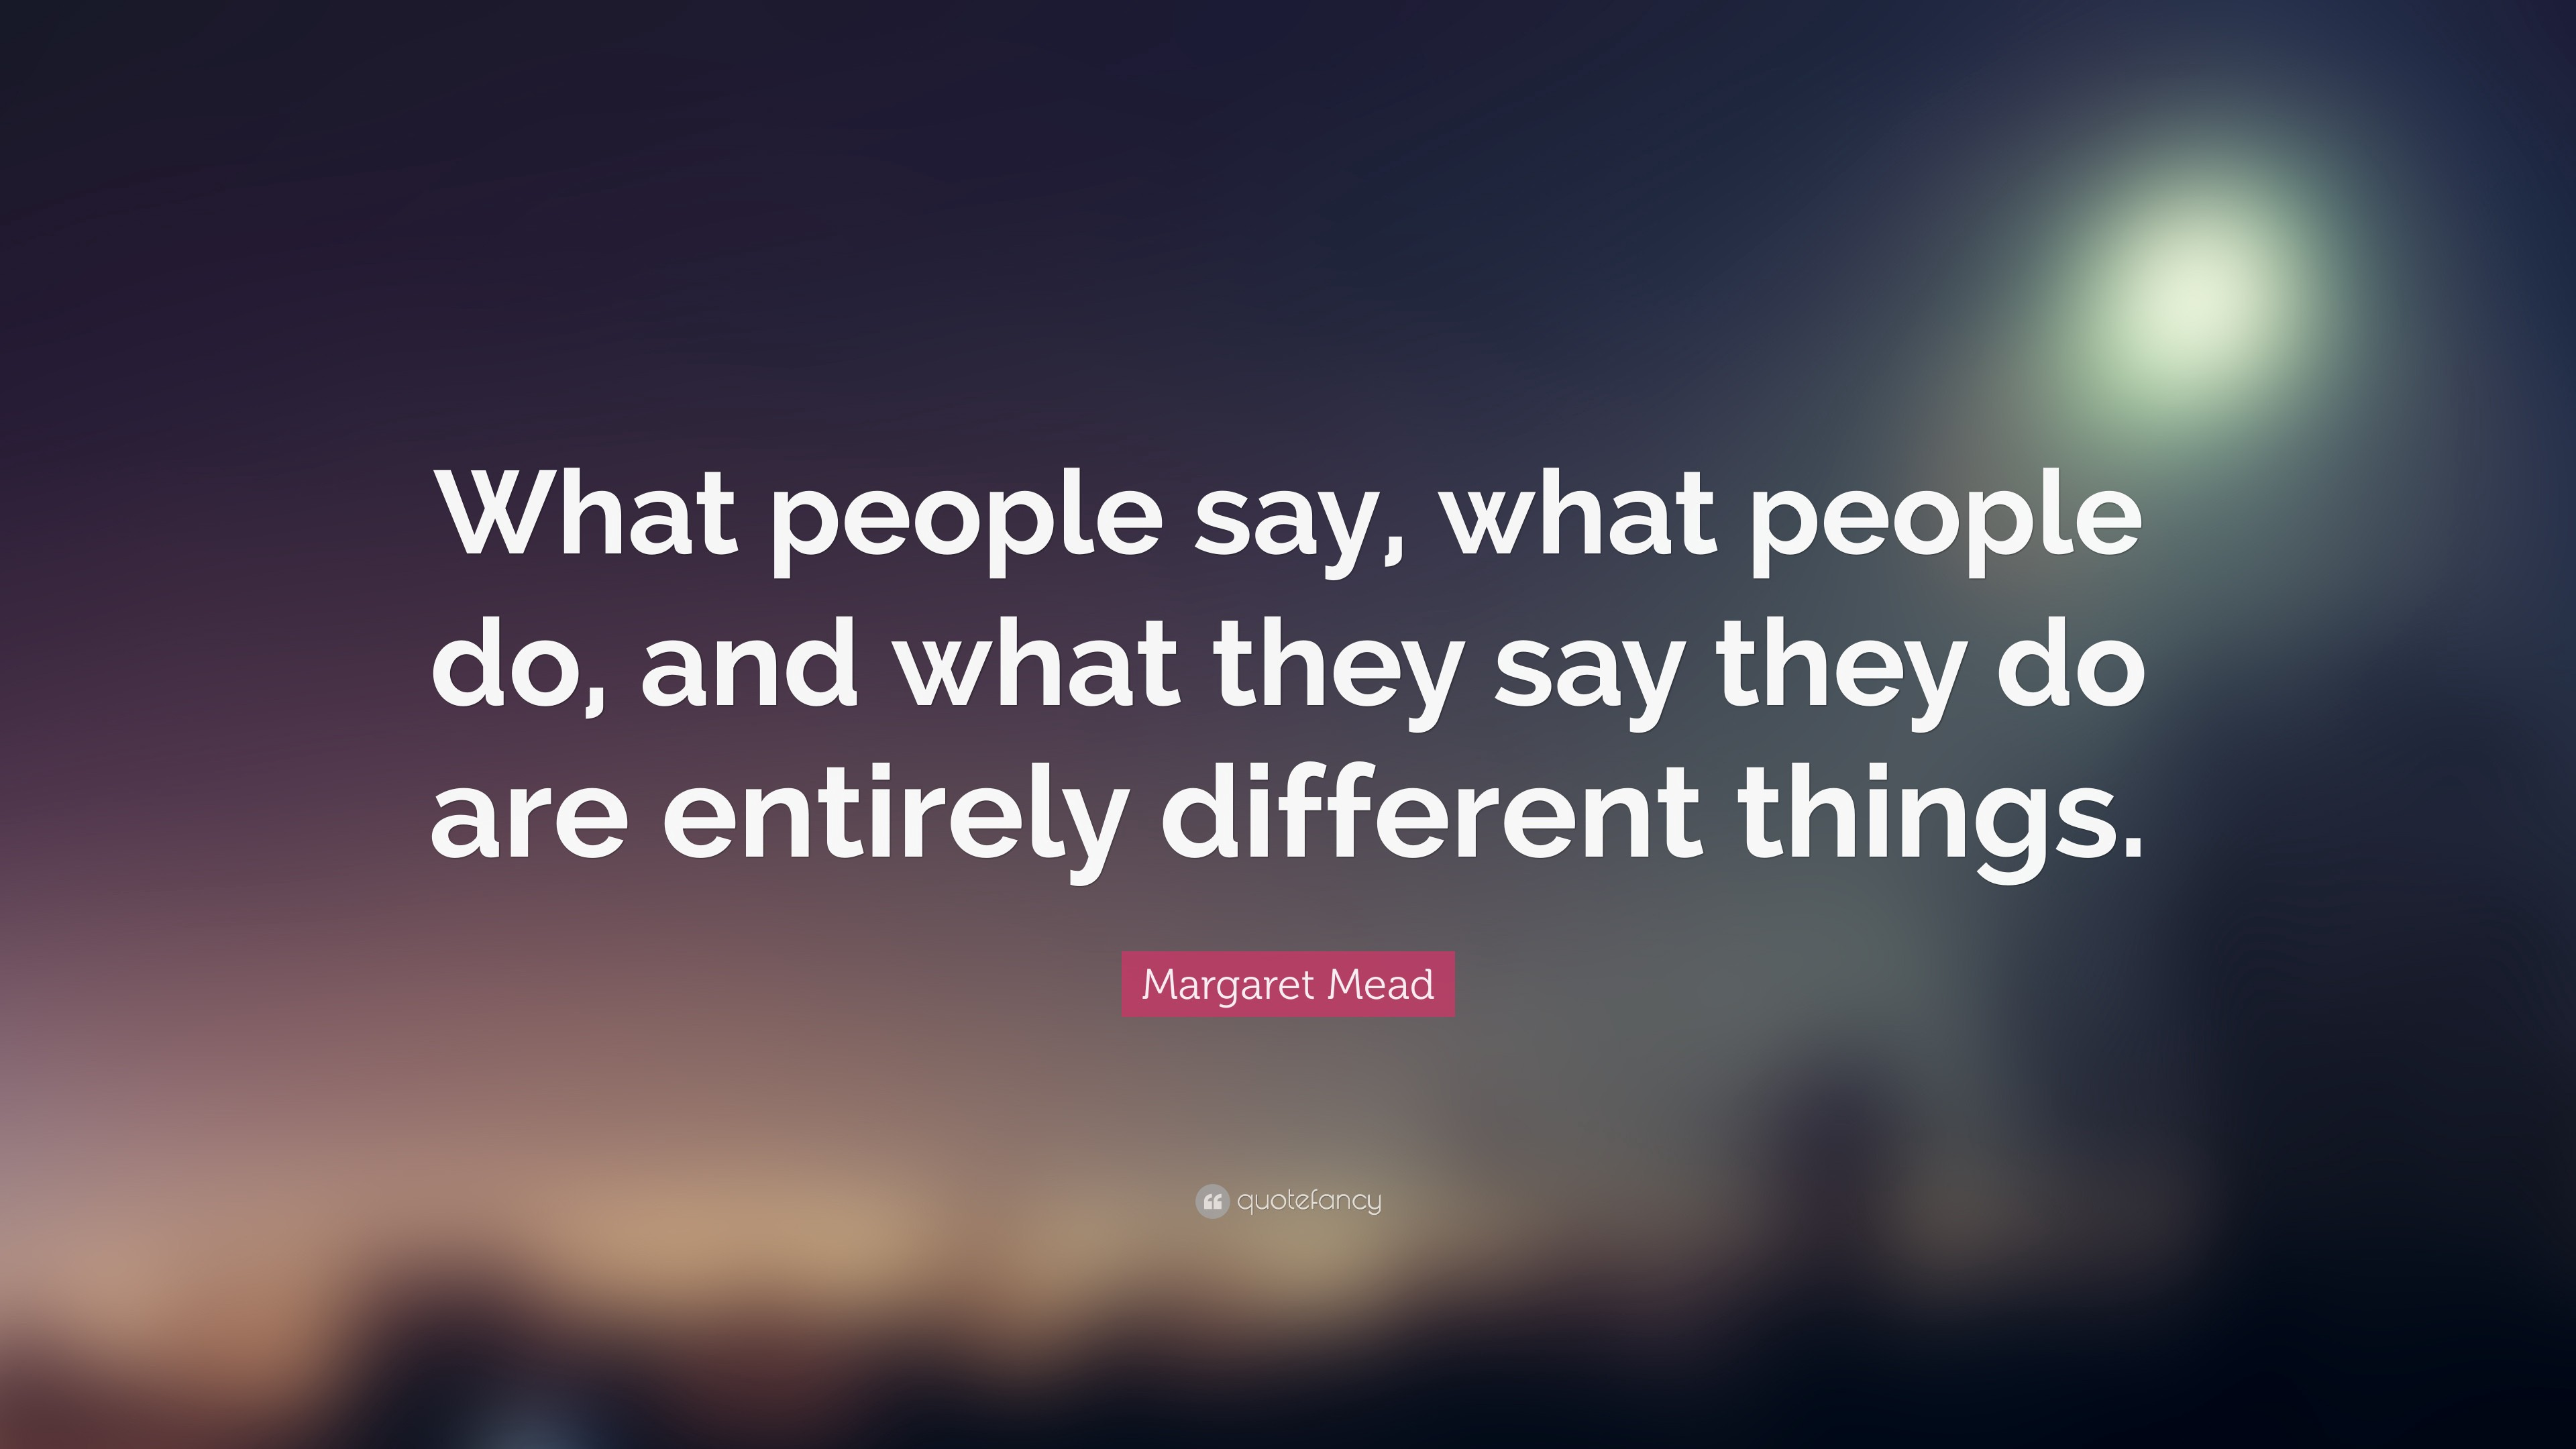 What people say, what people do, and what they say they do are entirely different things — Margaret Mead